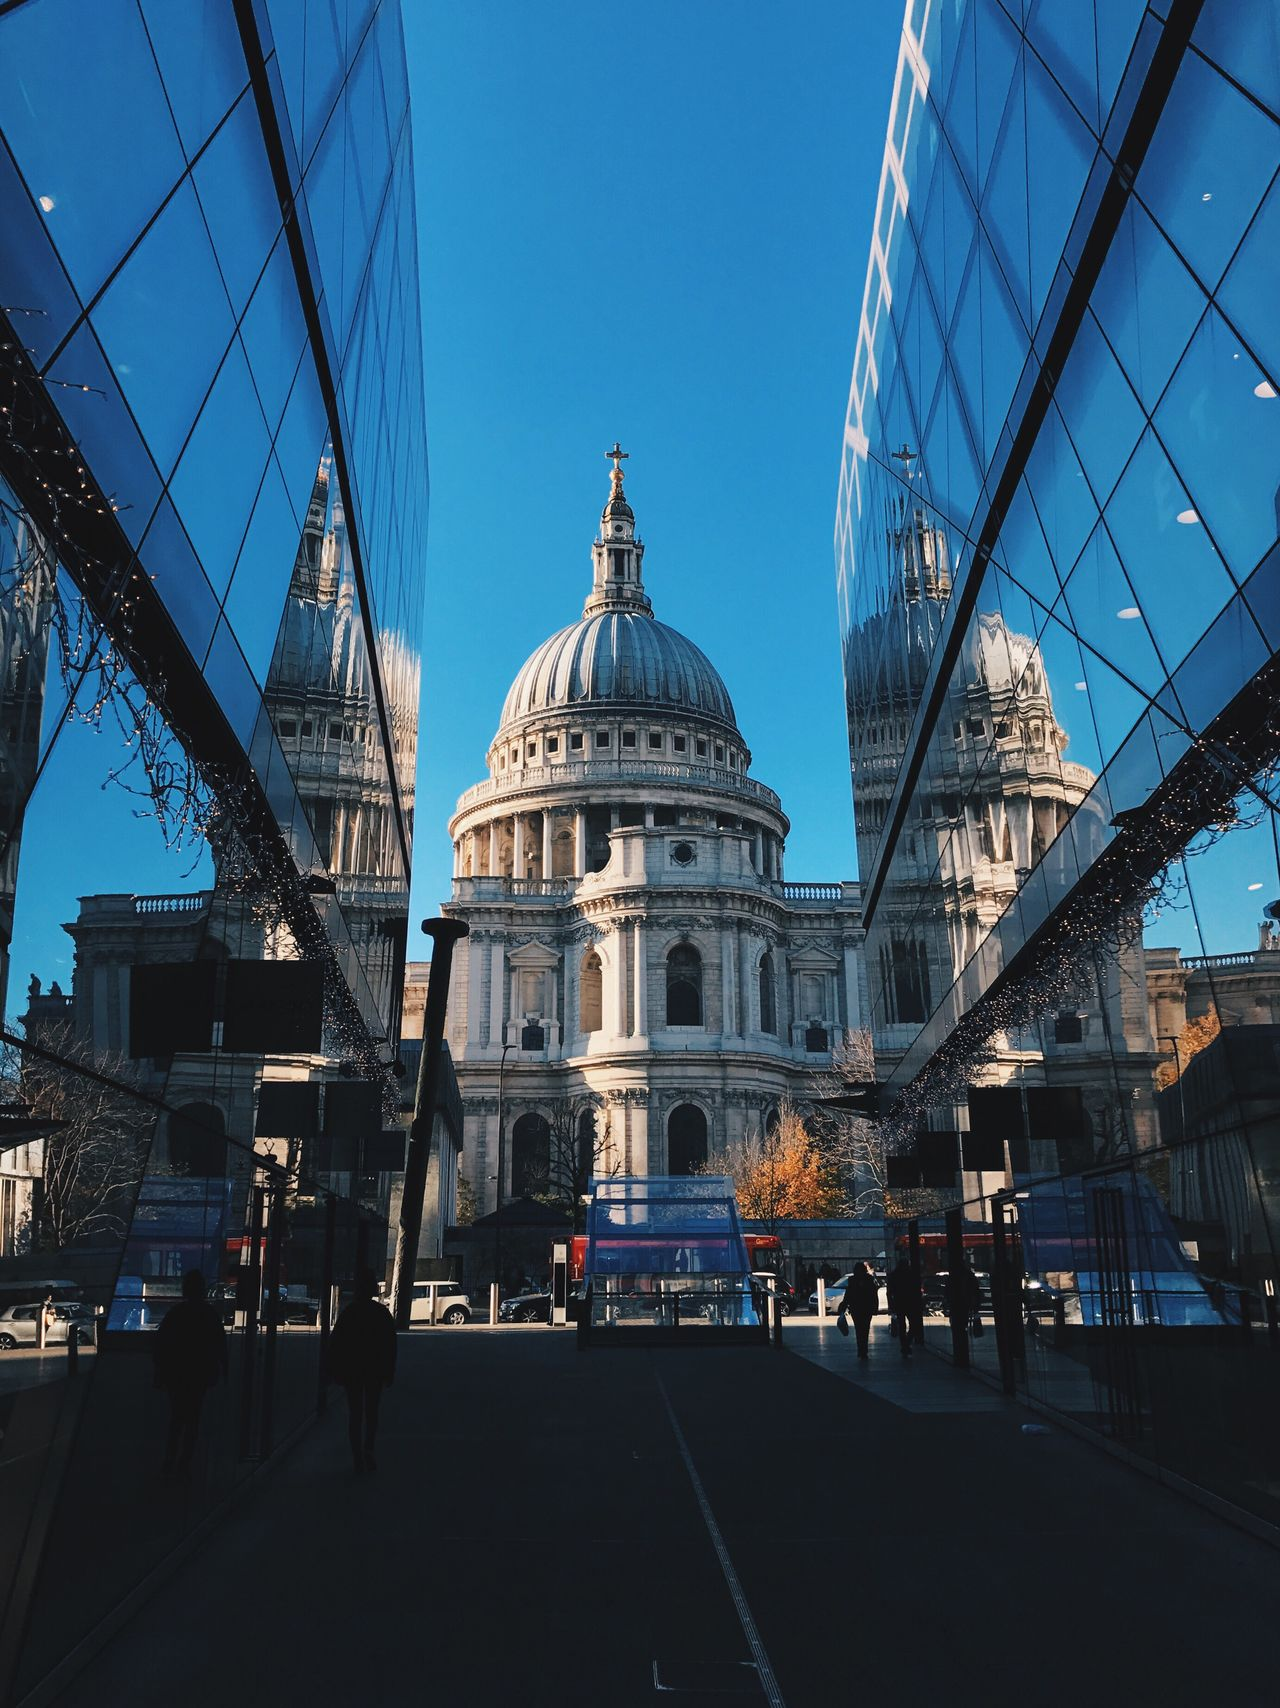 || St - Paul's Cathedral || Dome Architecture Building Exterior City Travel Destinations Travel Tourism Built Structure Day Sky London Hipster